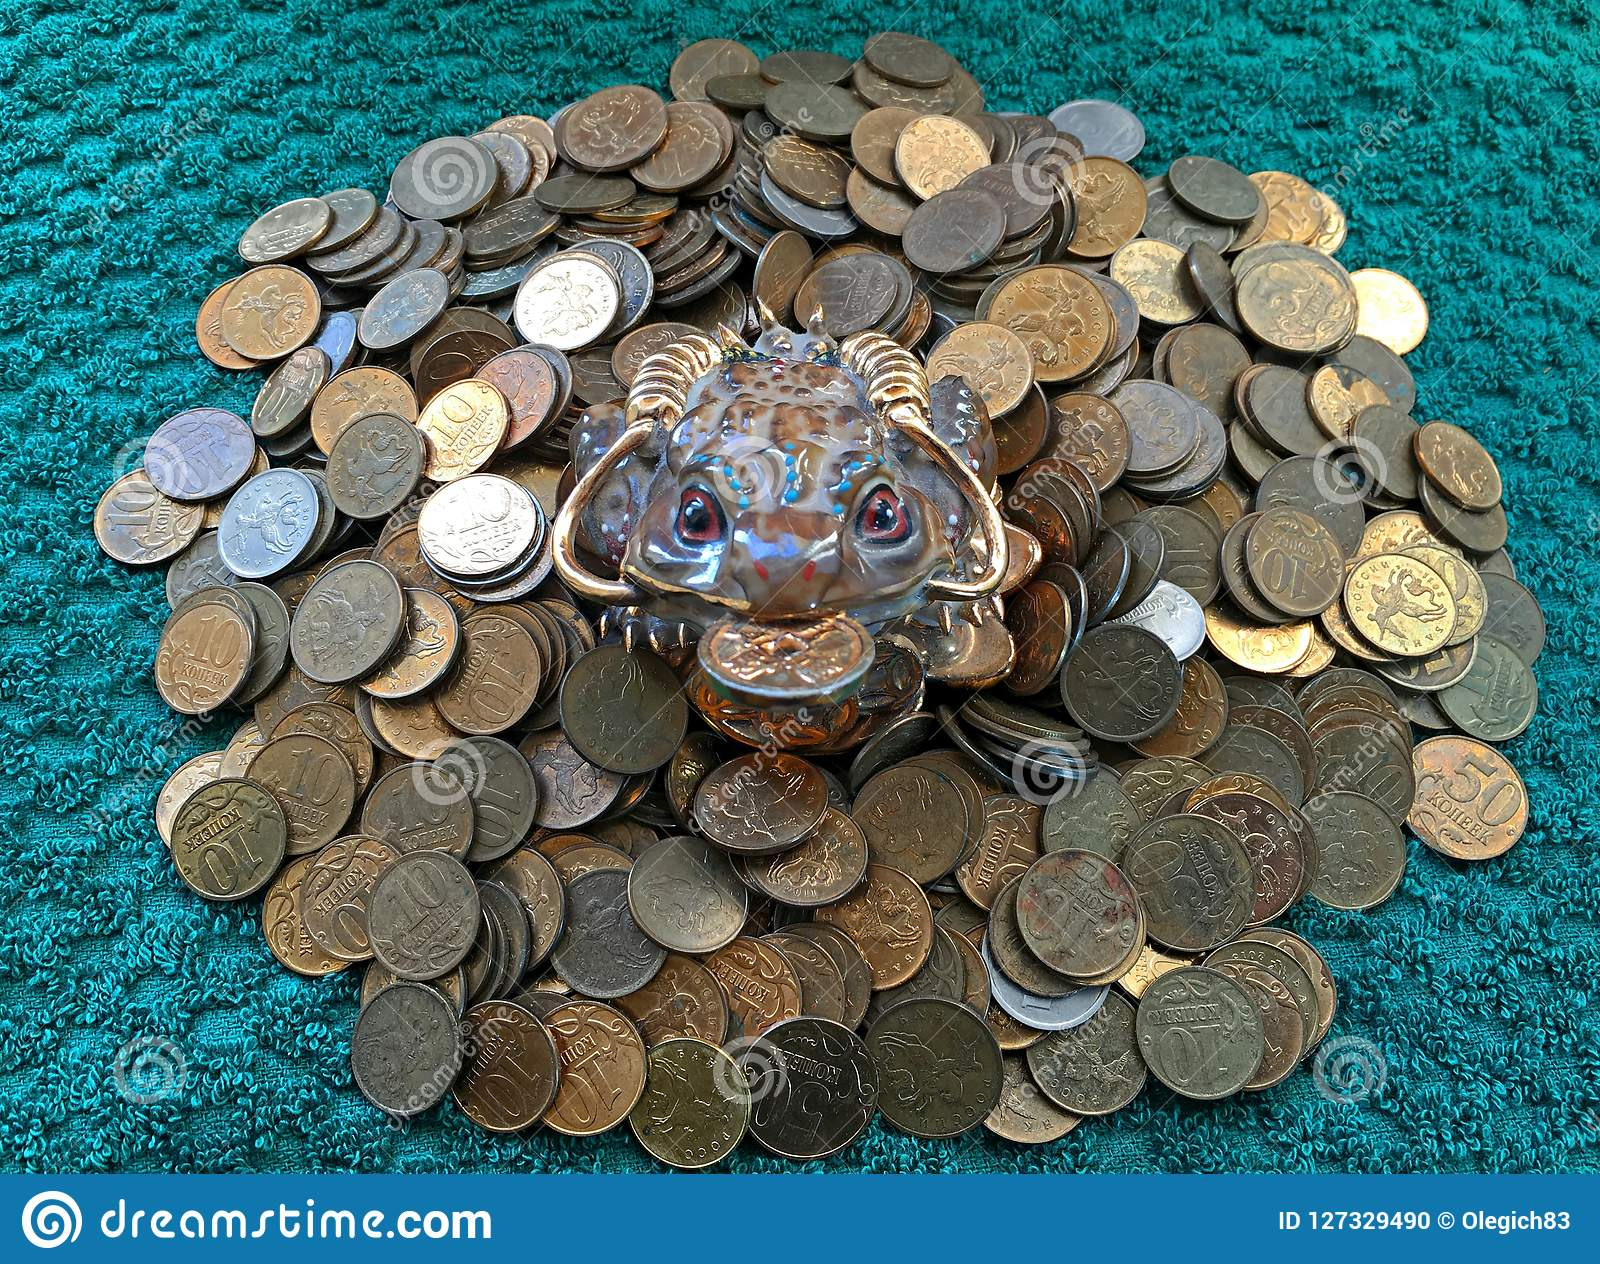 Money frog sitting on coins